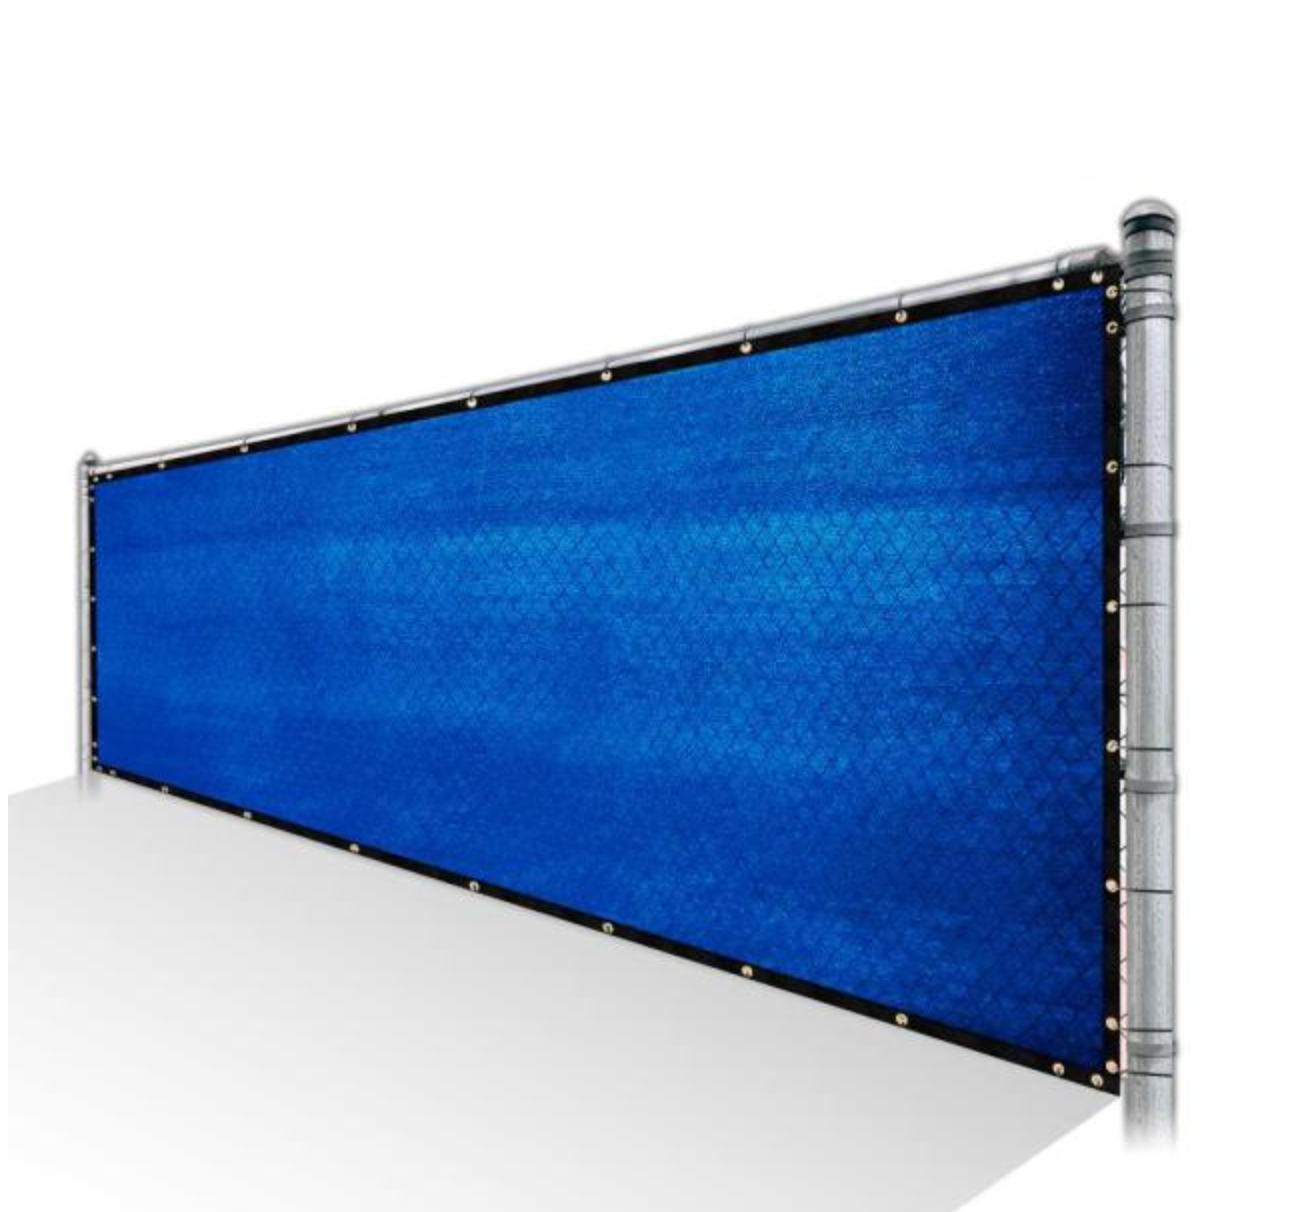 Privacy Fence Screen 85% Shade - Blue Mesh Fabric